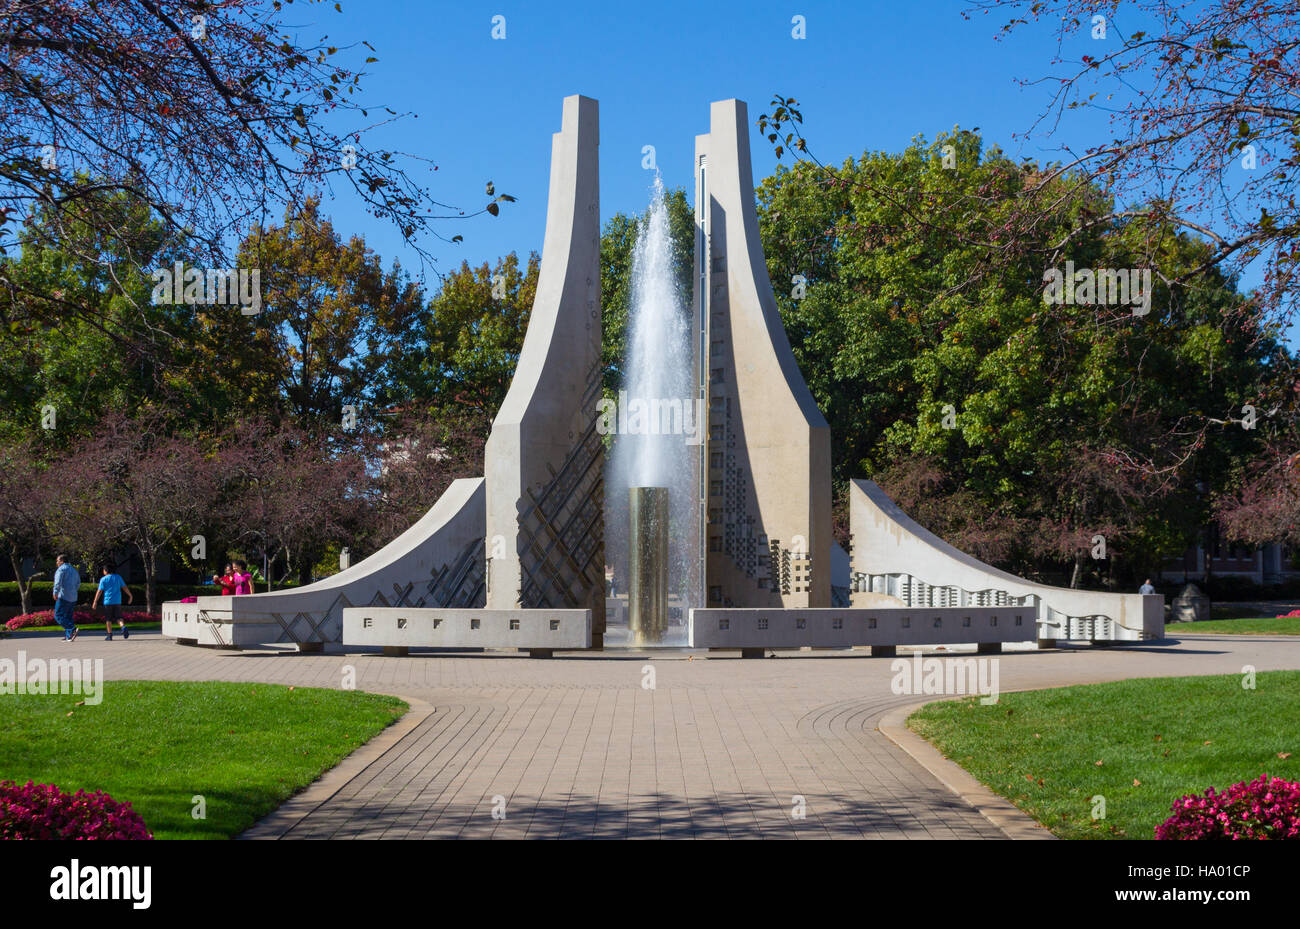 Purdue Mall Fountain / Purdue Engineering Fountain, Purdue University campus, West Lafayette, Indiana, United States - Stock Image